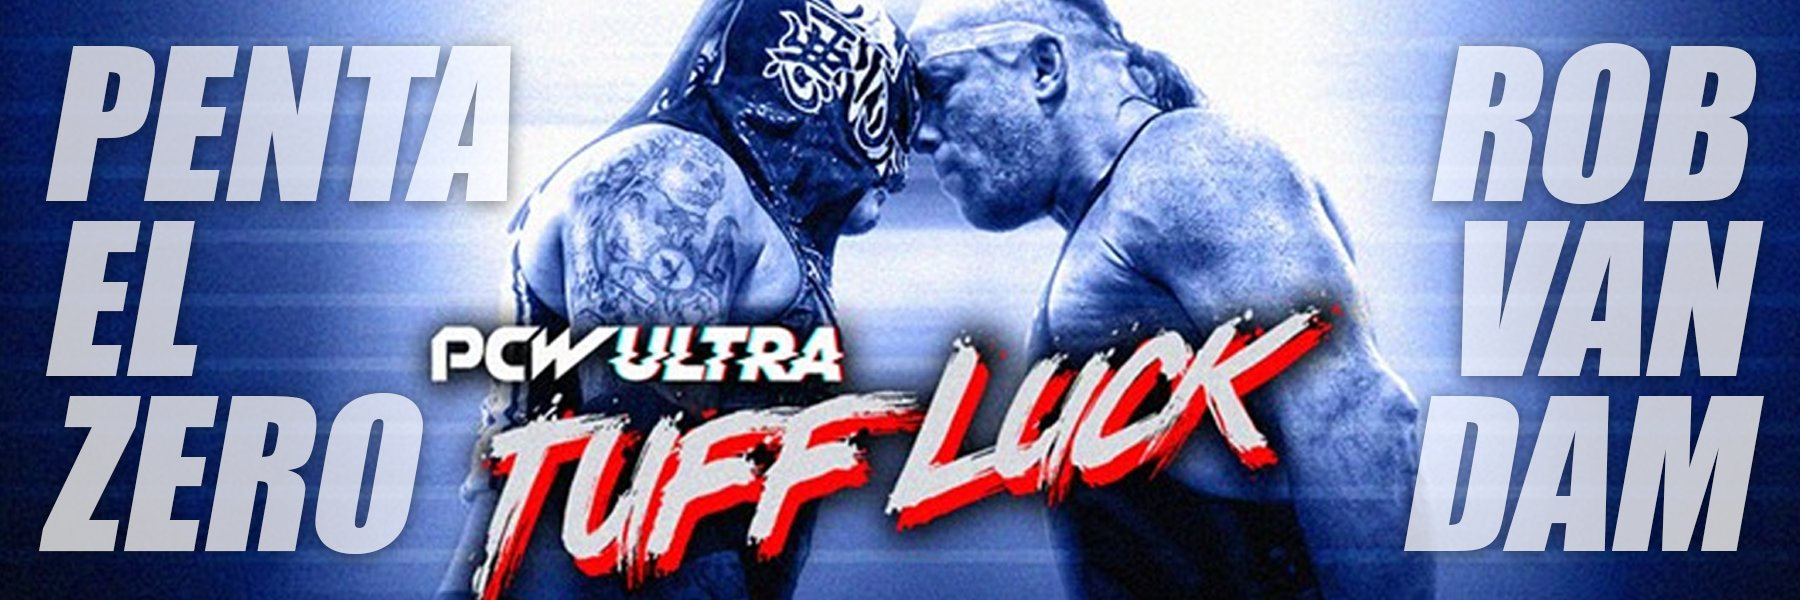 "See Impact Champ Penta El Zero vs ""The Whole F'N Show"" Rob Van Dam!"